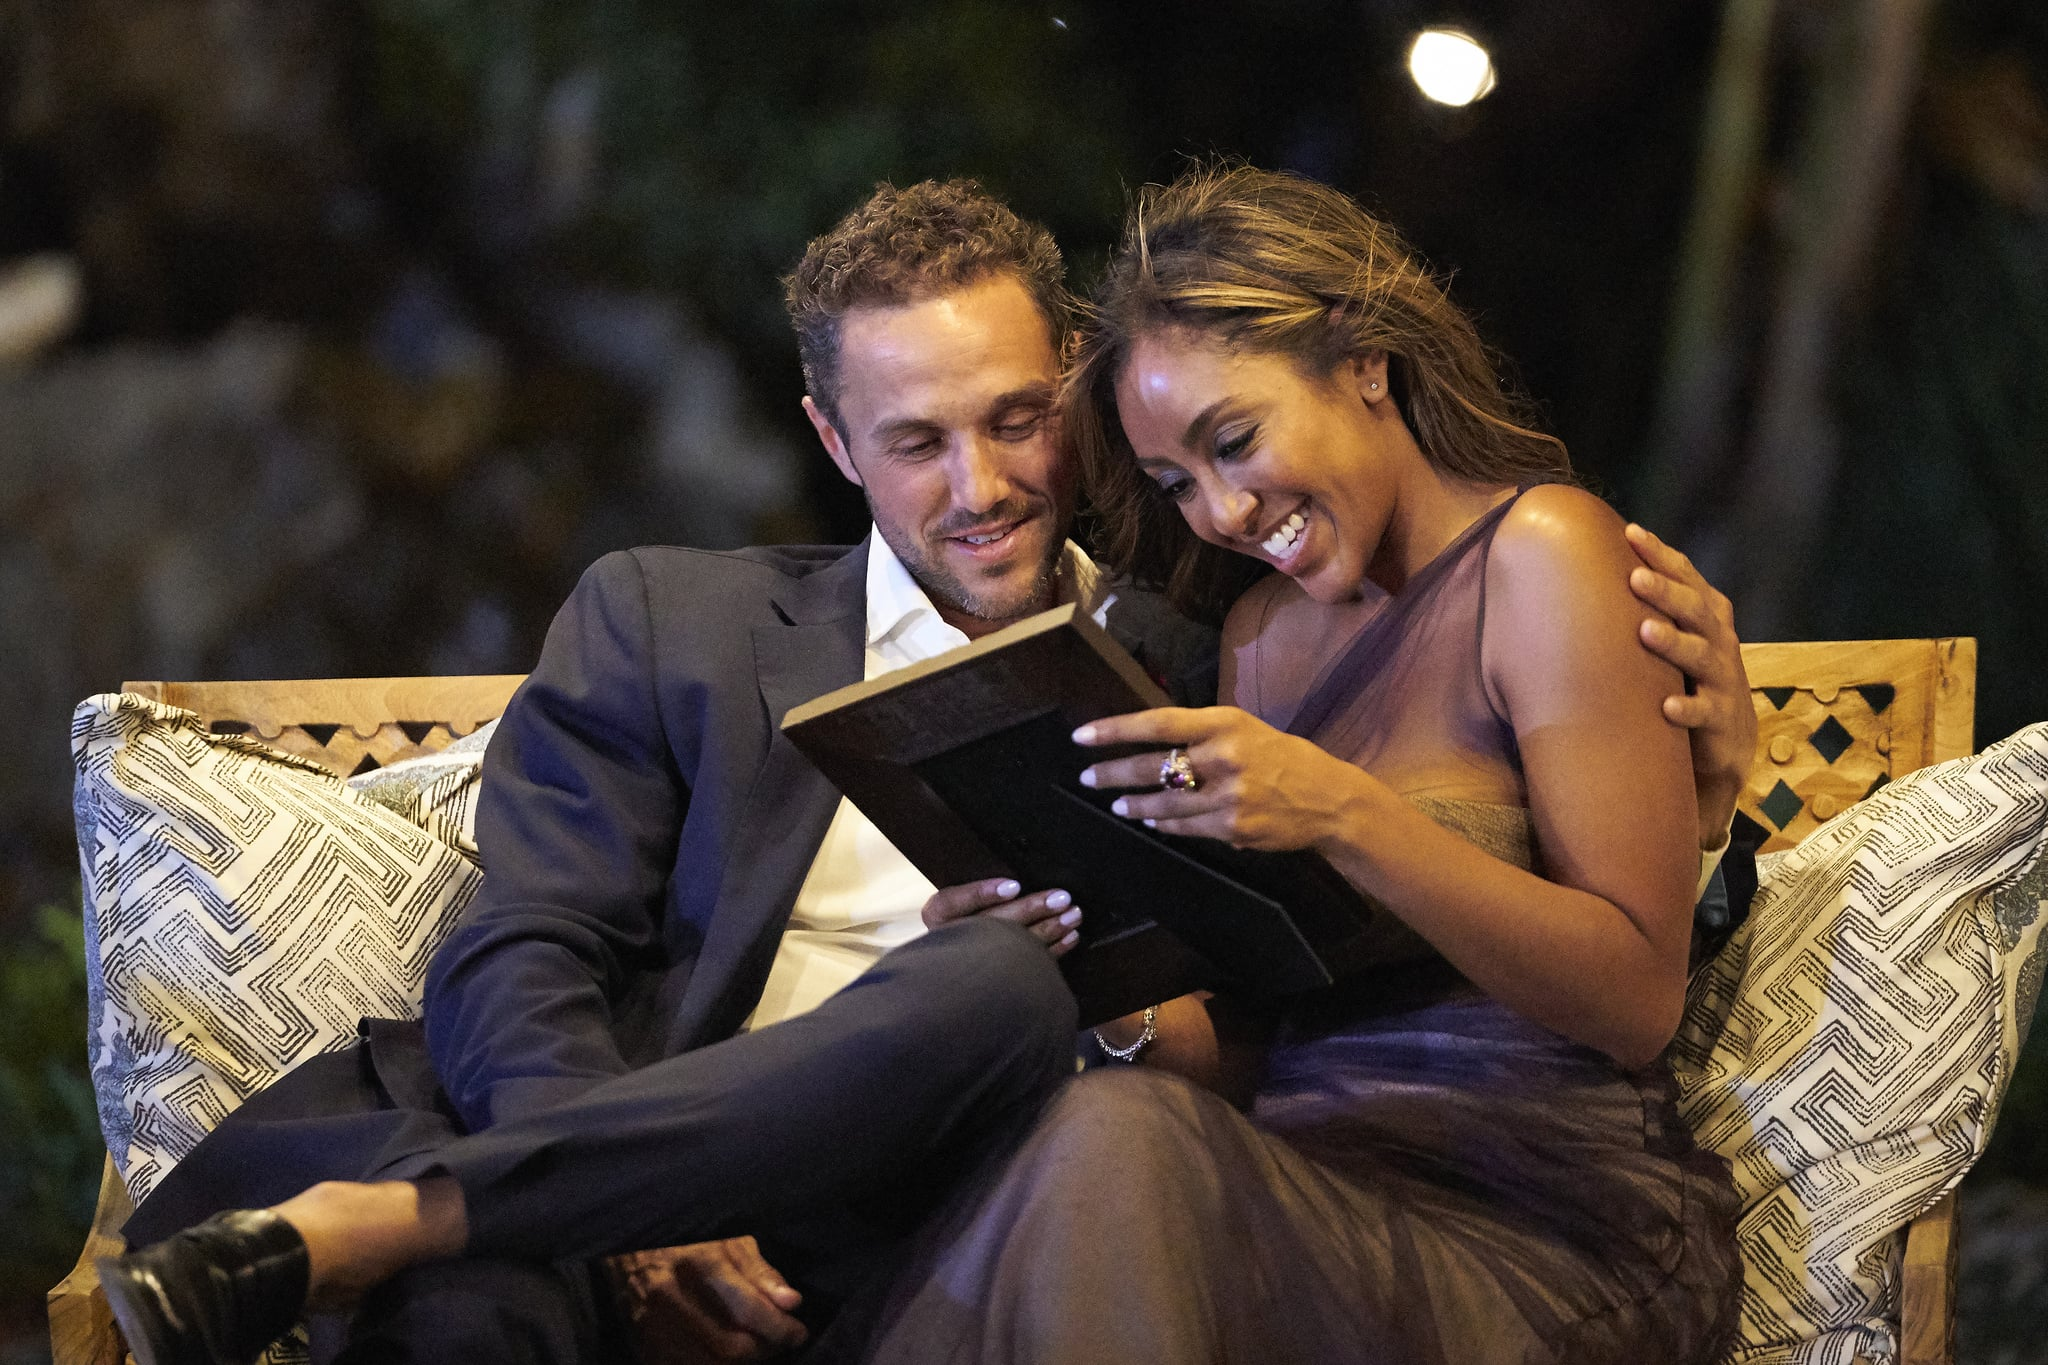 THE BACHELORETTE - 1609  The drama rages on as Bennett and Noah continue to confront one another on the impromptu two-on-one date. JoJo ups the ante by explaining to the men that a rose this week will be their ticket to a hometown date and an opportunity to introduce Tayshia to their families. One mans one-on-one date starts as a fun scavenger hunt but evolves into a more serious discussion when he shares a deeply emotional secret with the Bachelorette that he hasnt revealed to anyone else. Honesty is at the top of Tayshias list for a soul mate, and she puts five men through a high-pressure lie detector date. After all the confessions, there is one more shocking surprise at the end of the night that might turn her journey upside down on The Bachelorette, TUESDAY, DEC. 8 (8:00-10:01 p.m. EST), on ABC. (ABC/Craig Sjodin)ZAC C., TAYSHIA ADAMS